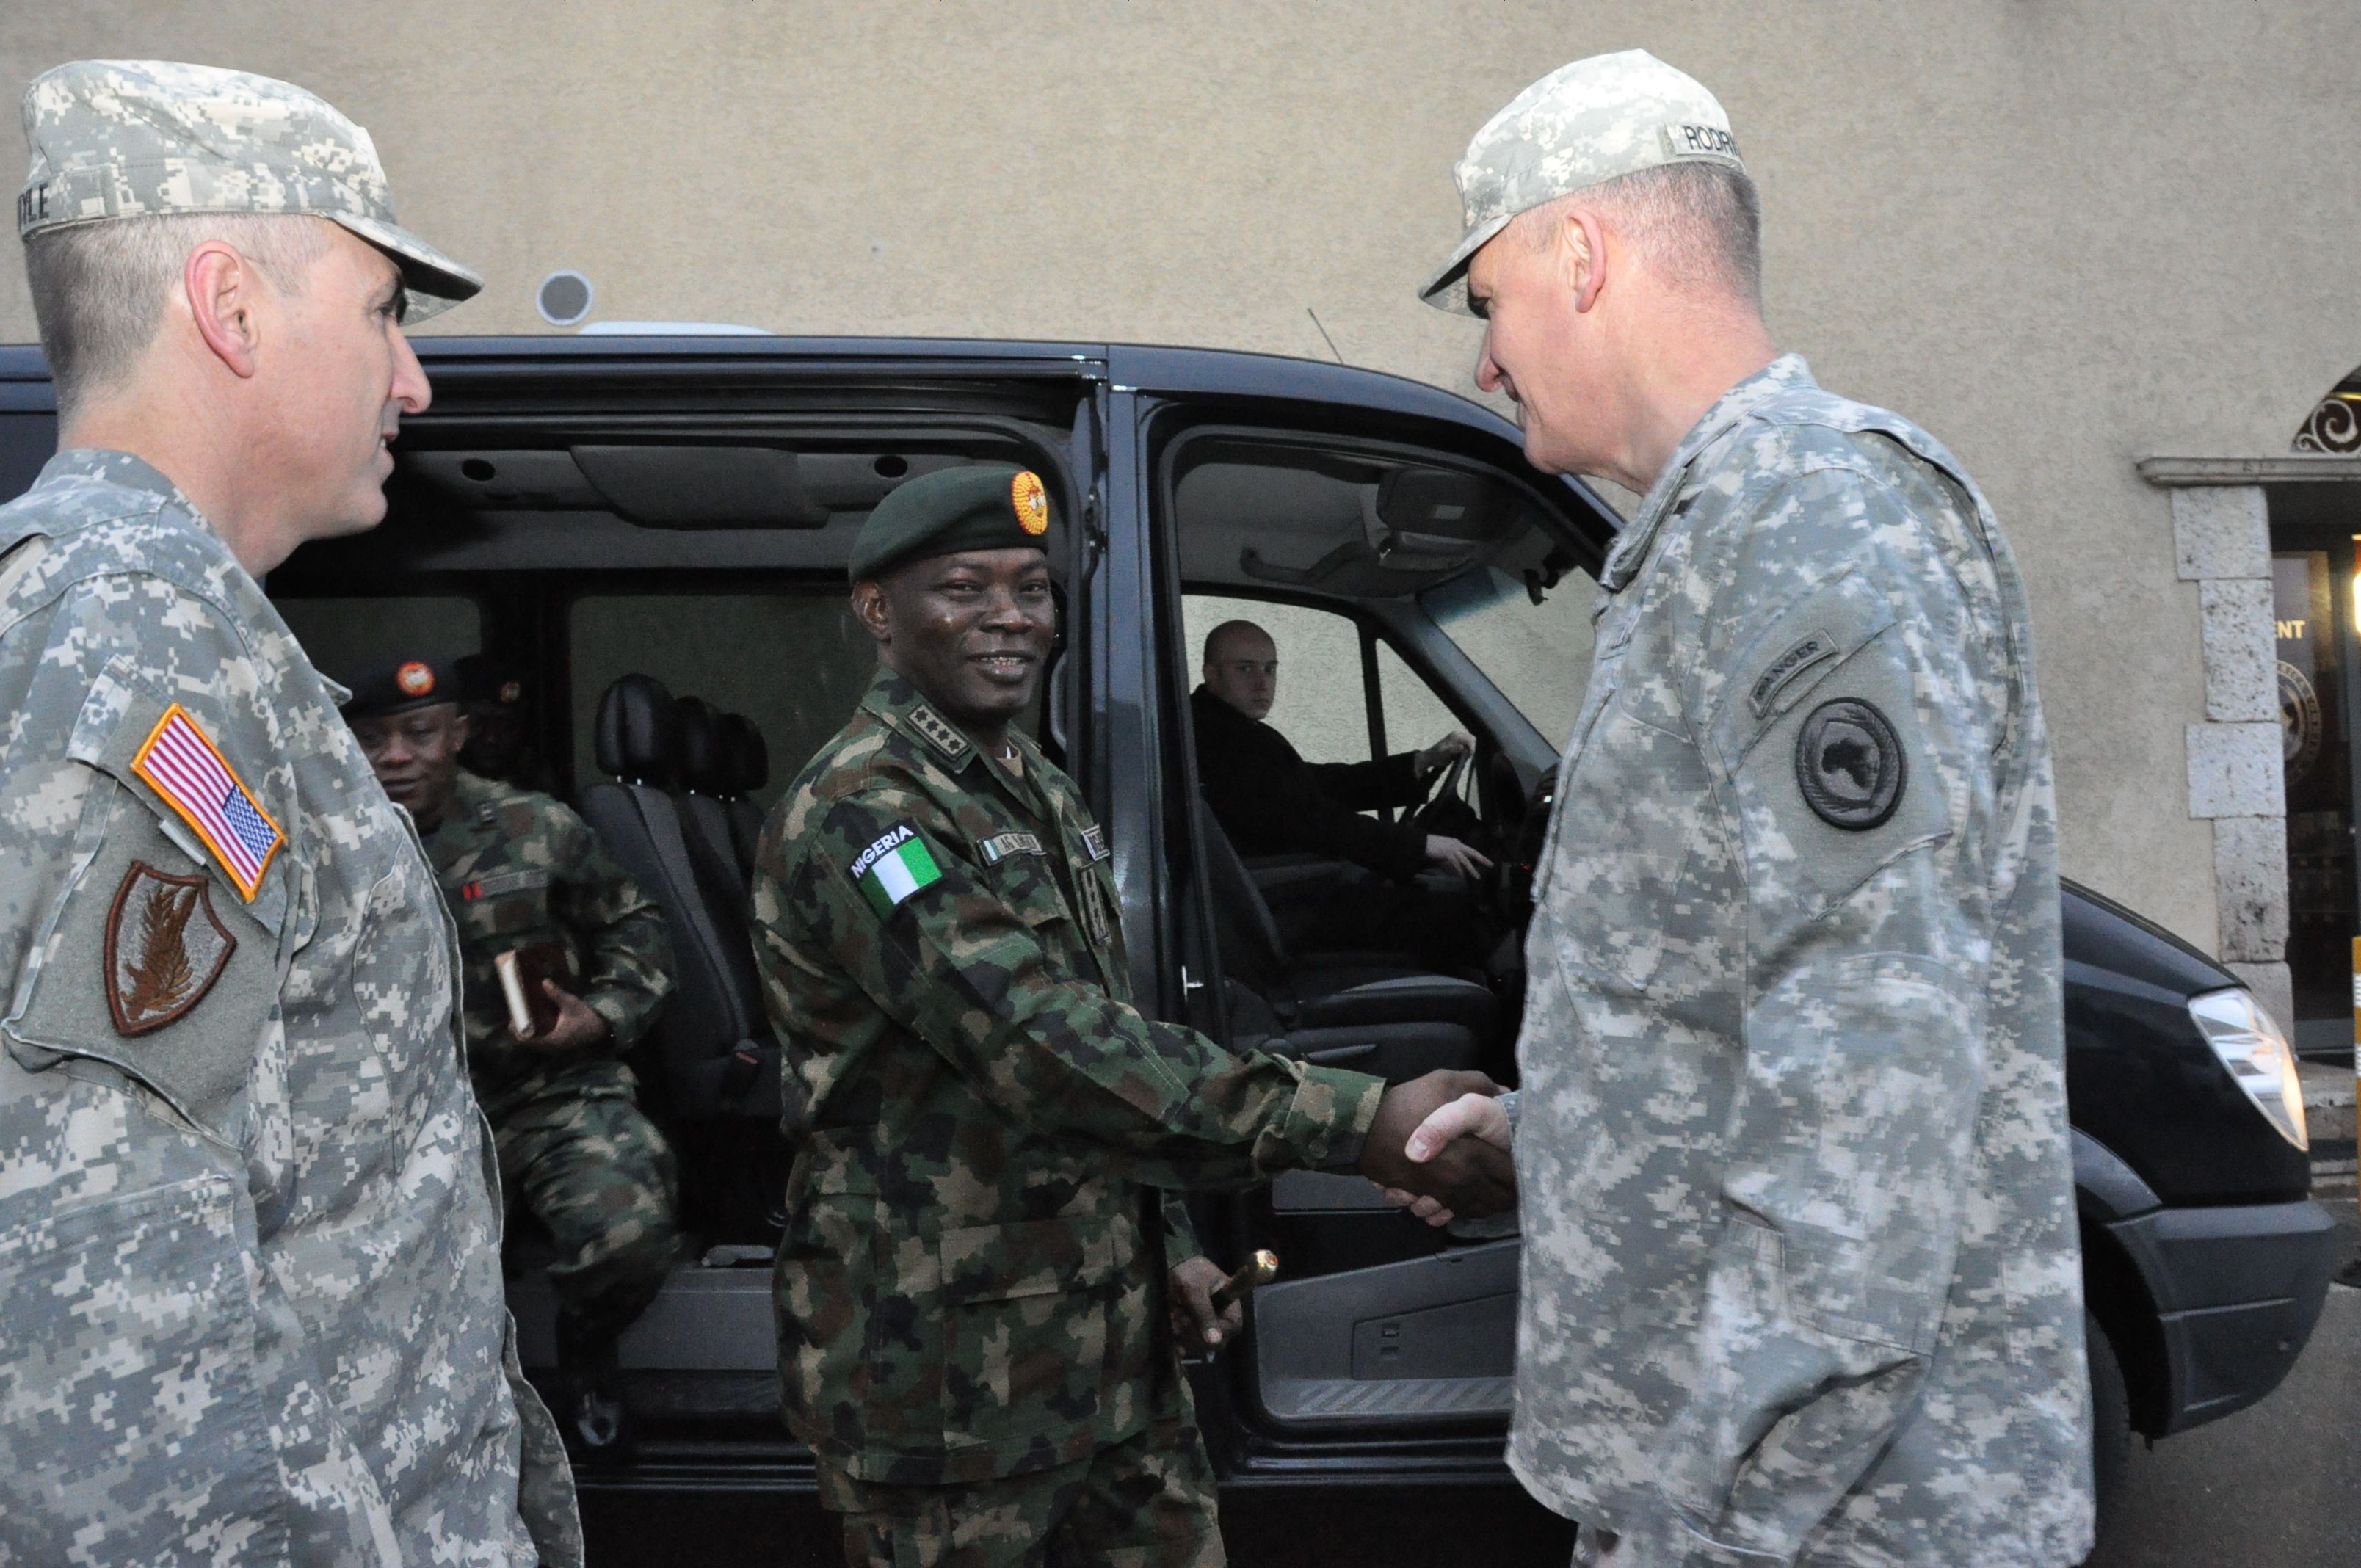 Gen. Abayomi Olonisakin, Nigeria CDS, is greeted by Gen. David Rodriguez, commander, U.S. Africa Command as he arrives for a two-day meeting with senior AFRICOM commanders and leaders. The purpose of the visit was to reinforce the importance of a strong US-Nigeria security cooperation relationship. Gen. Olonisakin and several of his most senior officers engaged in topics on counter terrorism, joint operations, logistics, and maritime security in the Gulf of Guinea, Feb. 9, 2016, U.S. Army Garrison Stuttgart, Germany. (Photo by Brenda Law, U.S. Africa Command Public Affairs/RELEASED)